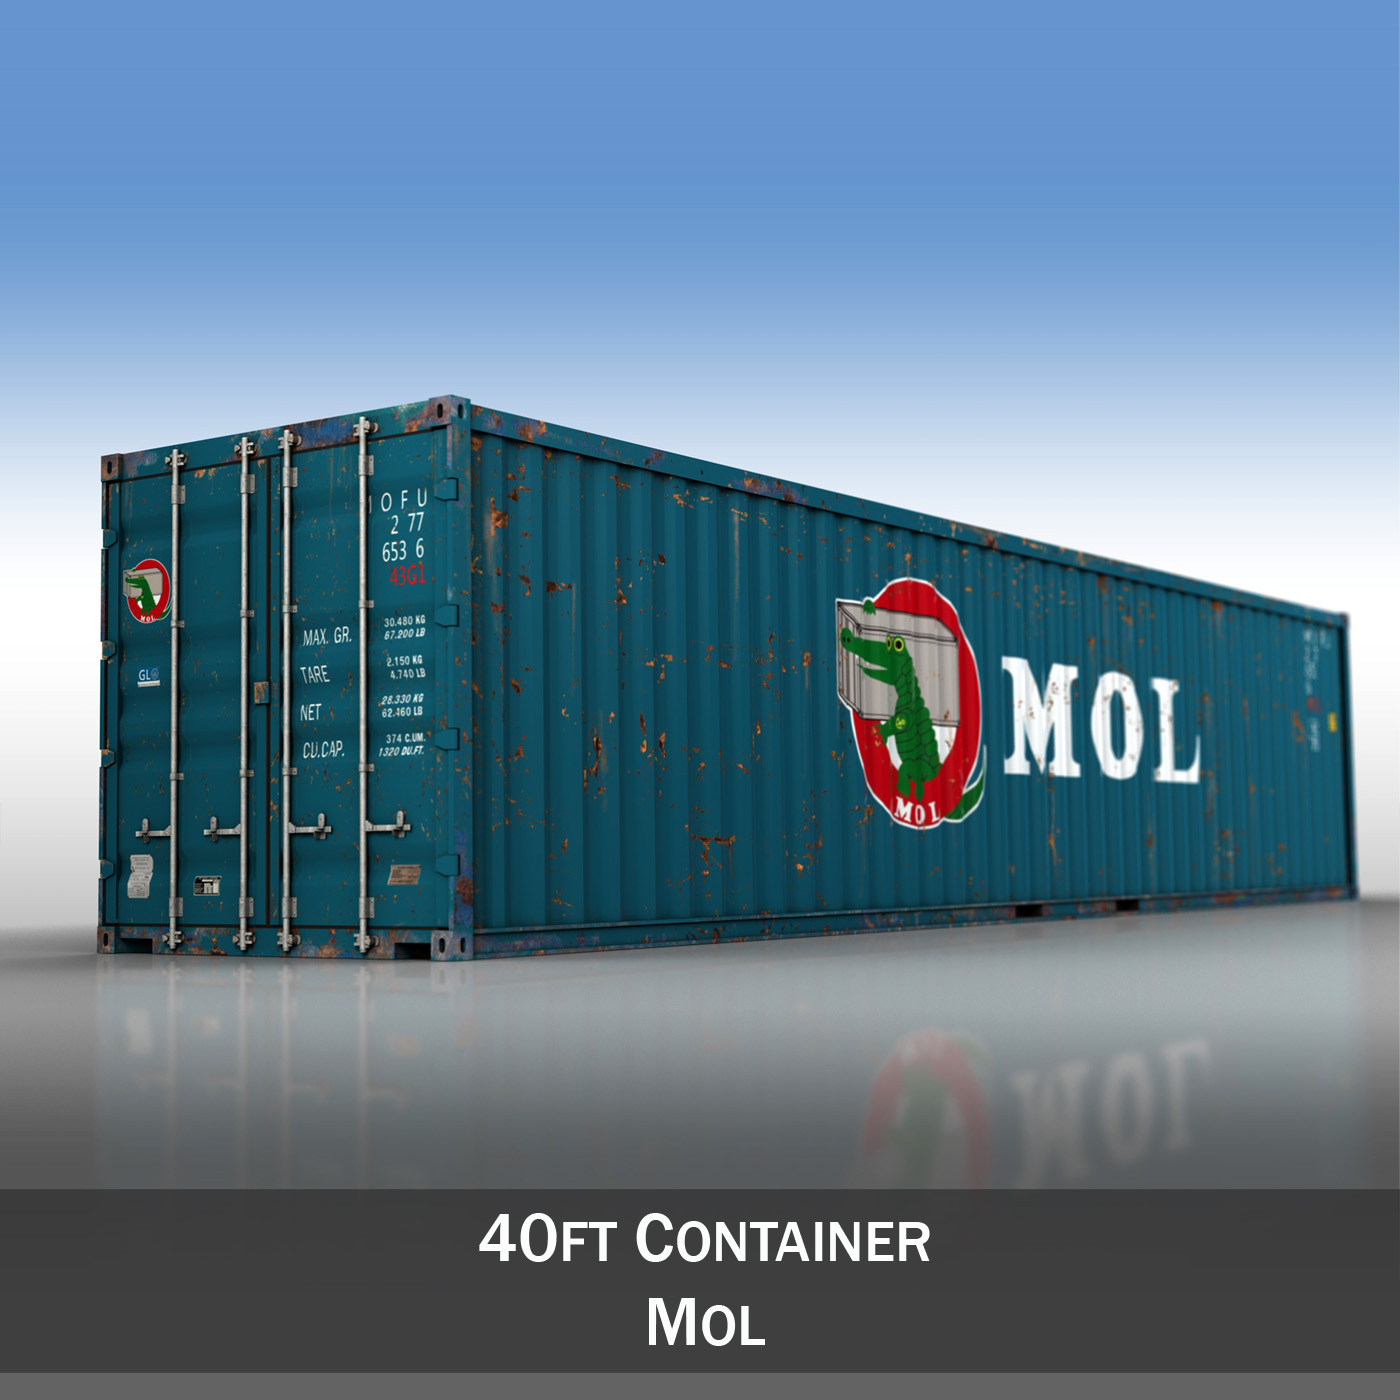 40ft pengiriman kontainer - mol 3d model 3ds fbx lwo lw lws obj c4d 265132